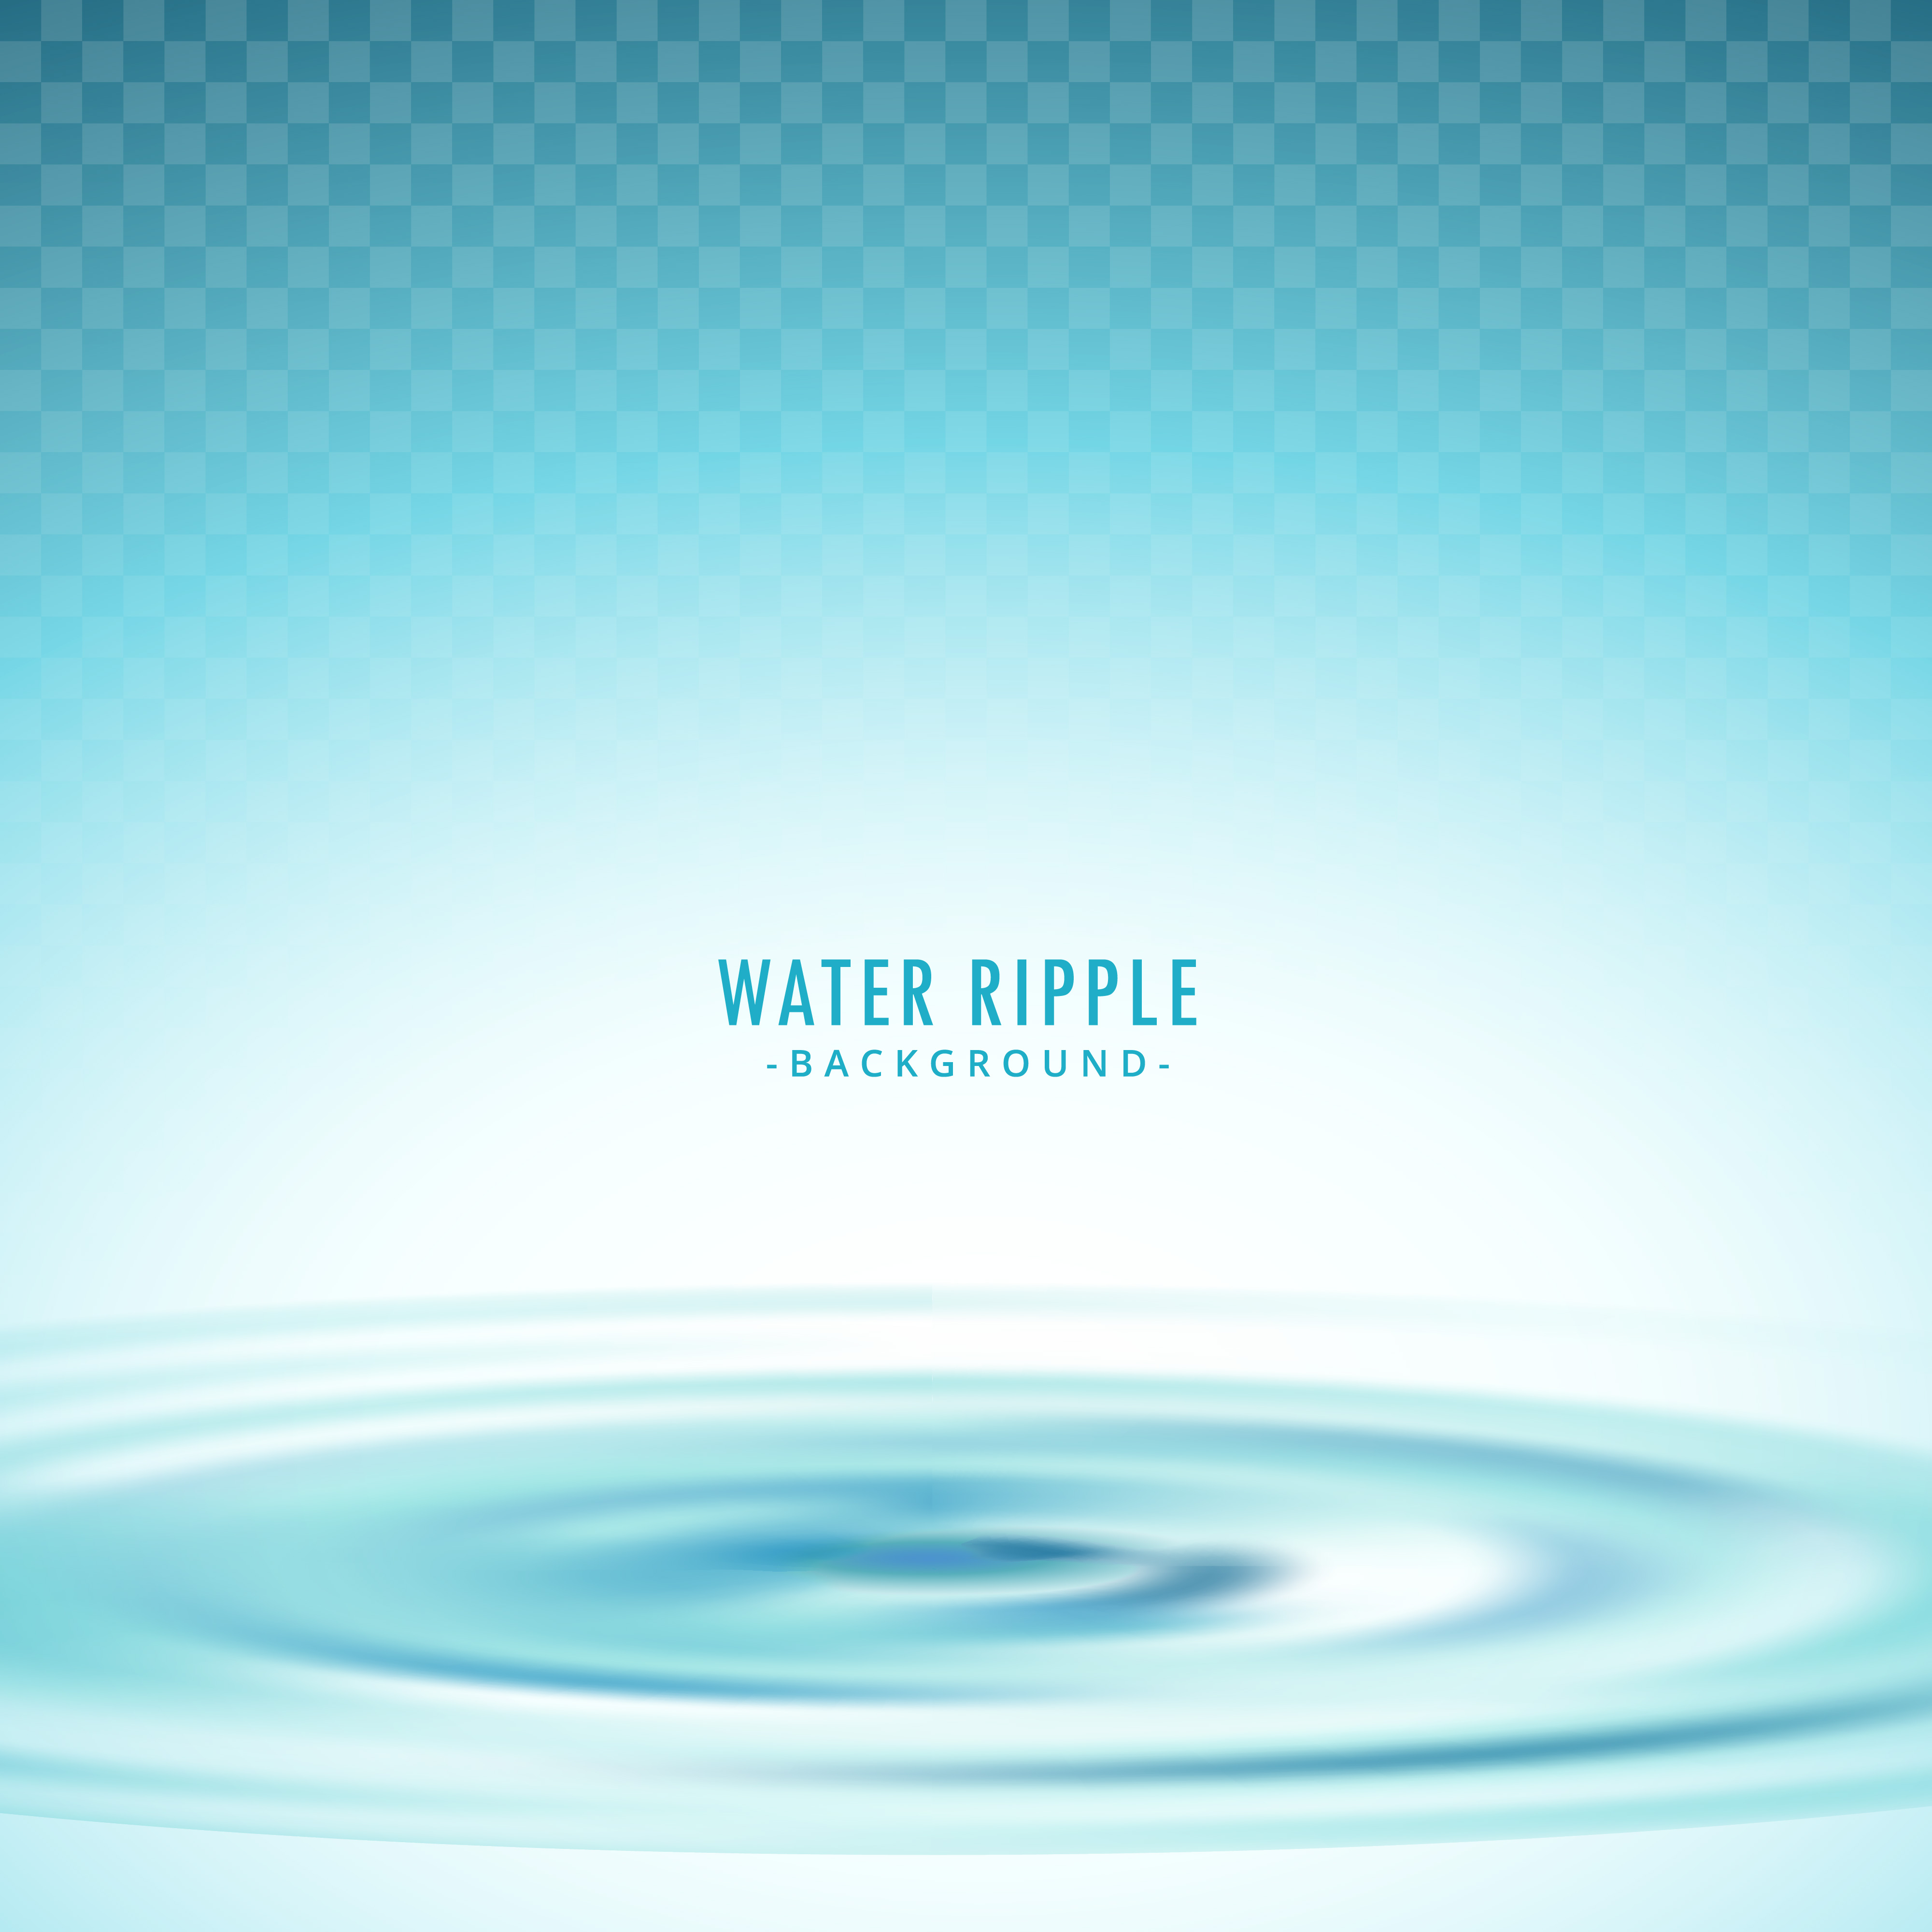 Vector Water Ripples 10855 Free Downloads